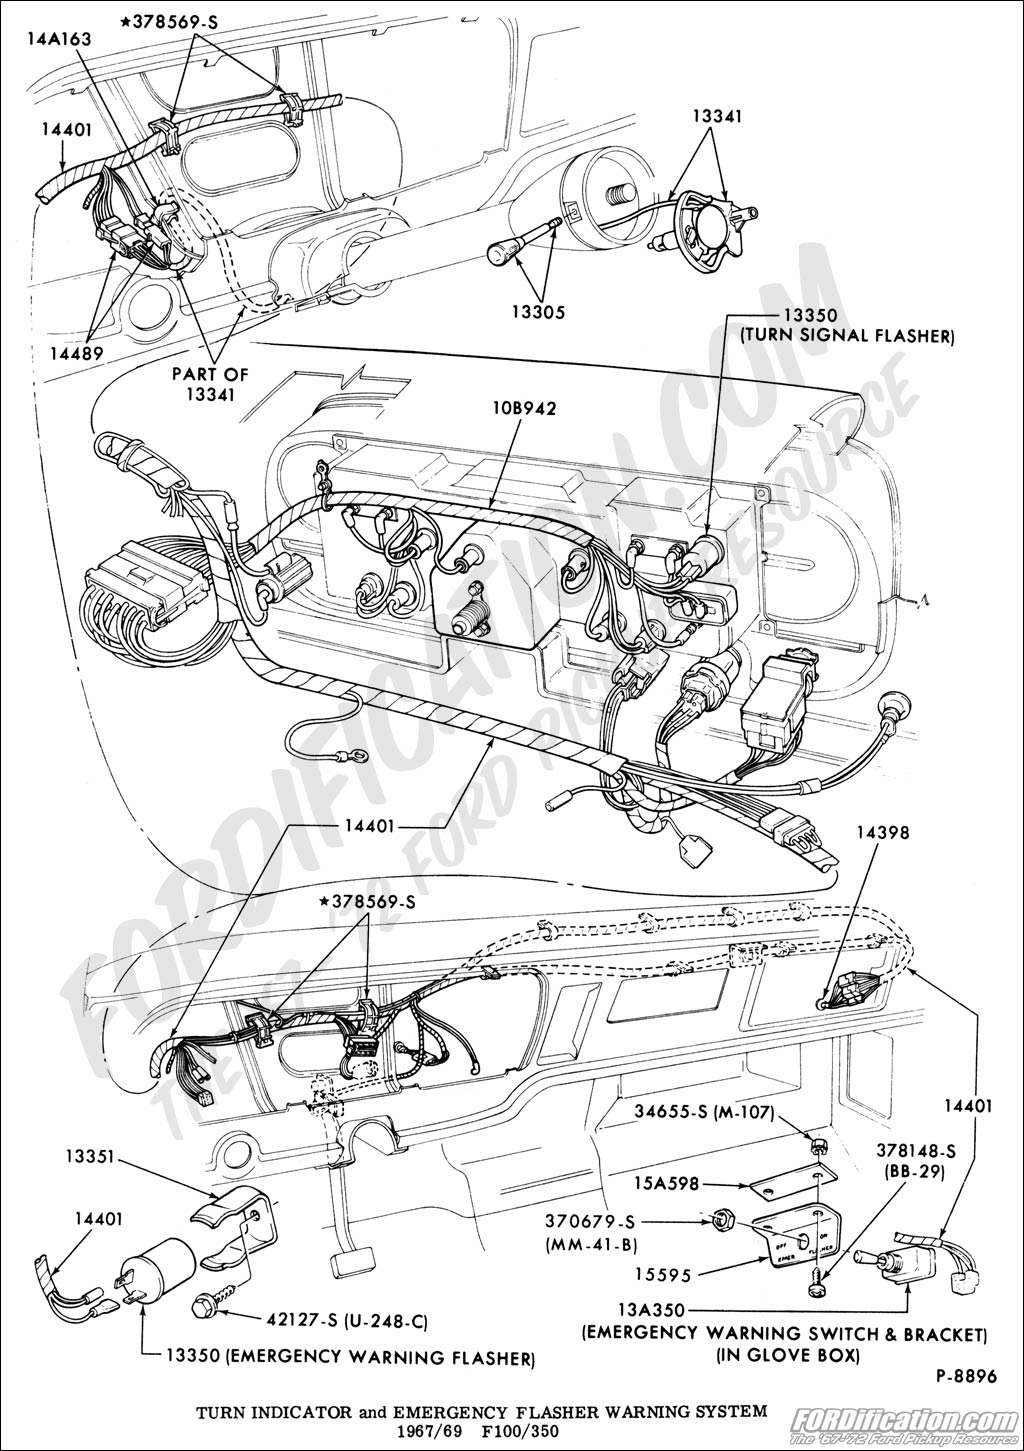 wiring diagram besides ford ignition switch wiring diagram as well